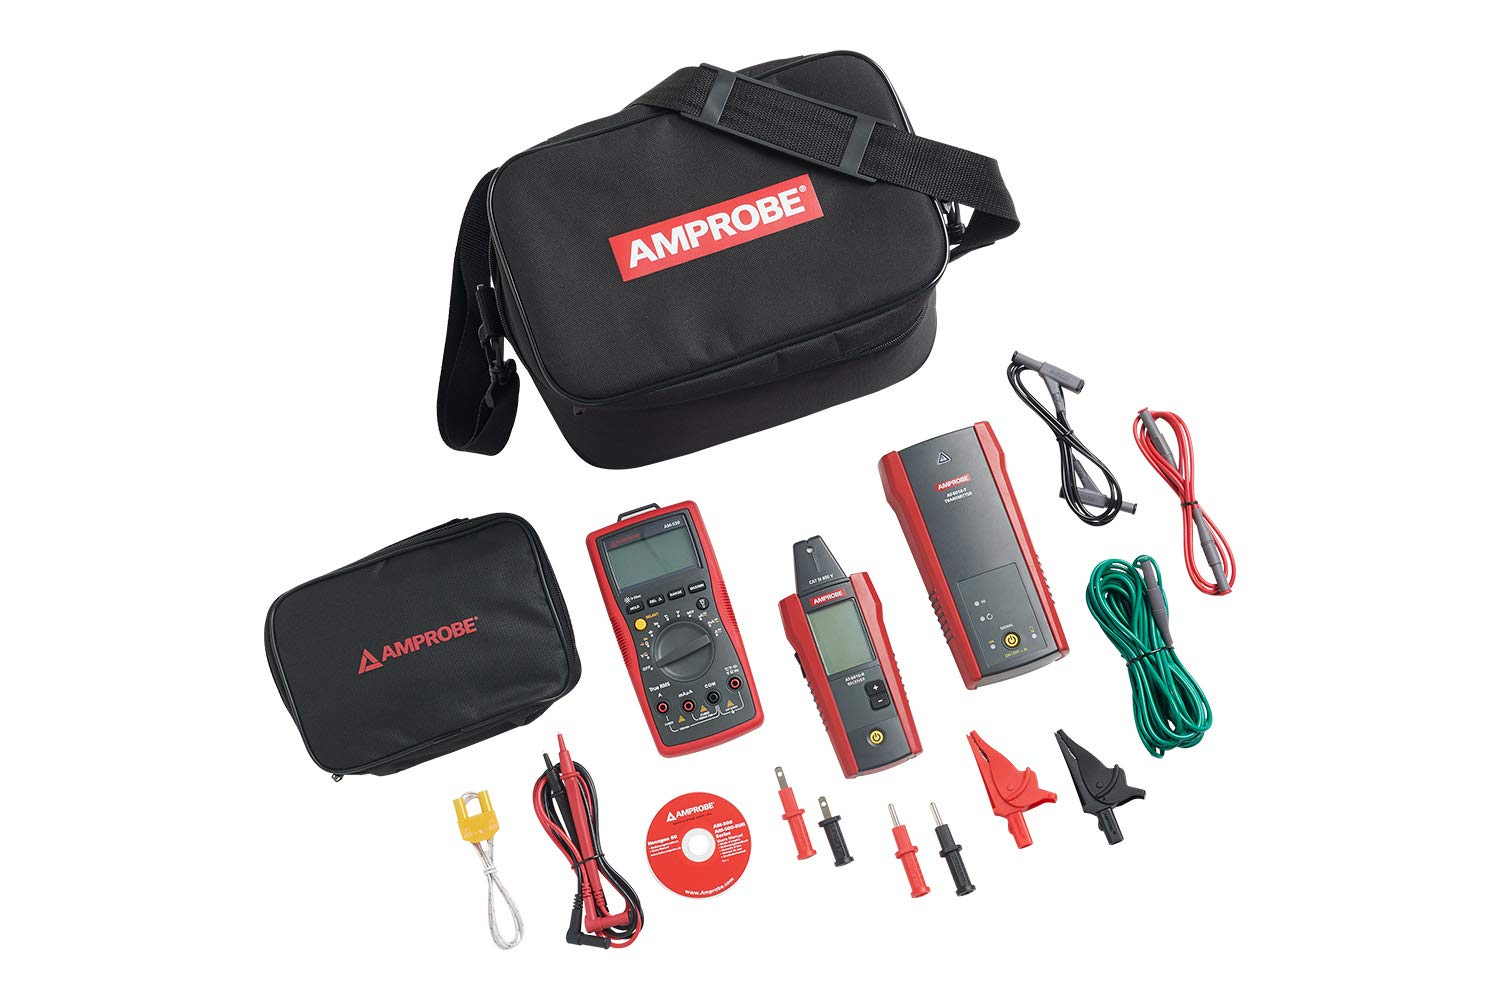 Amprobe AT-6010 KIT Advance Kit Large special price Max 85% OFF Wire Tracer